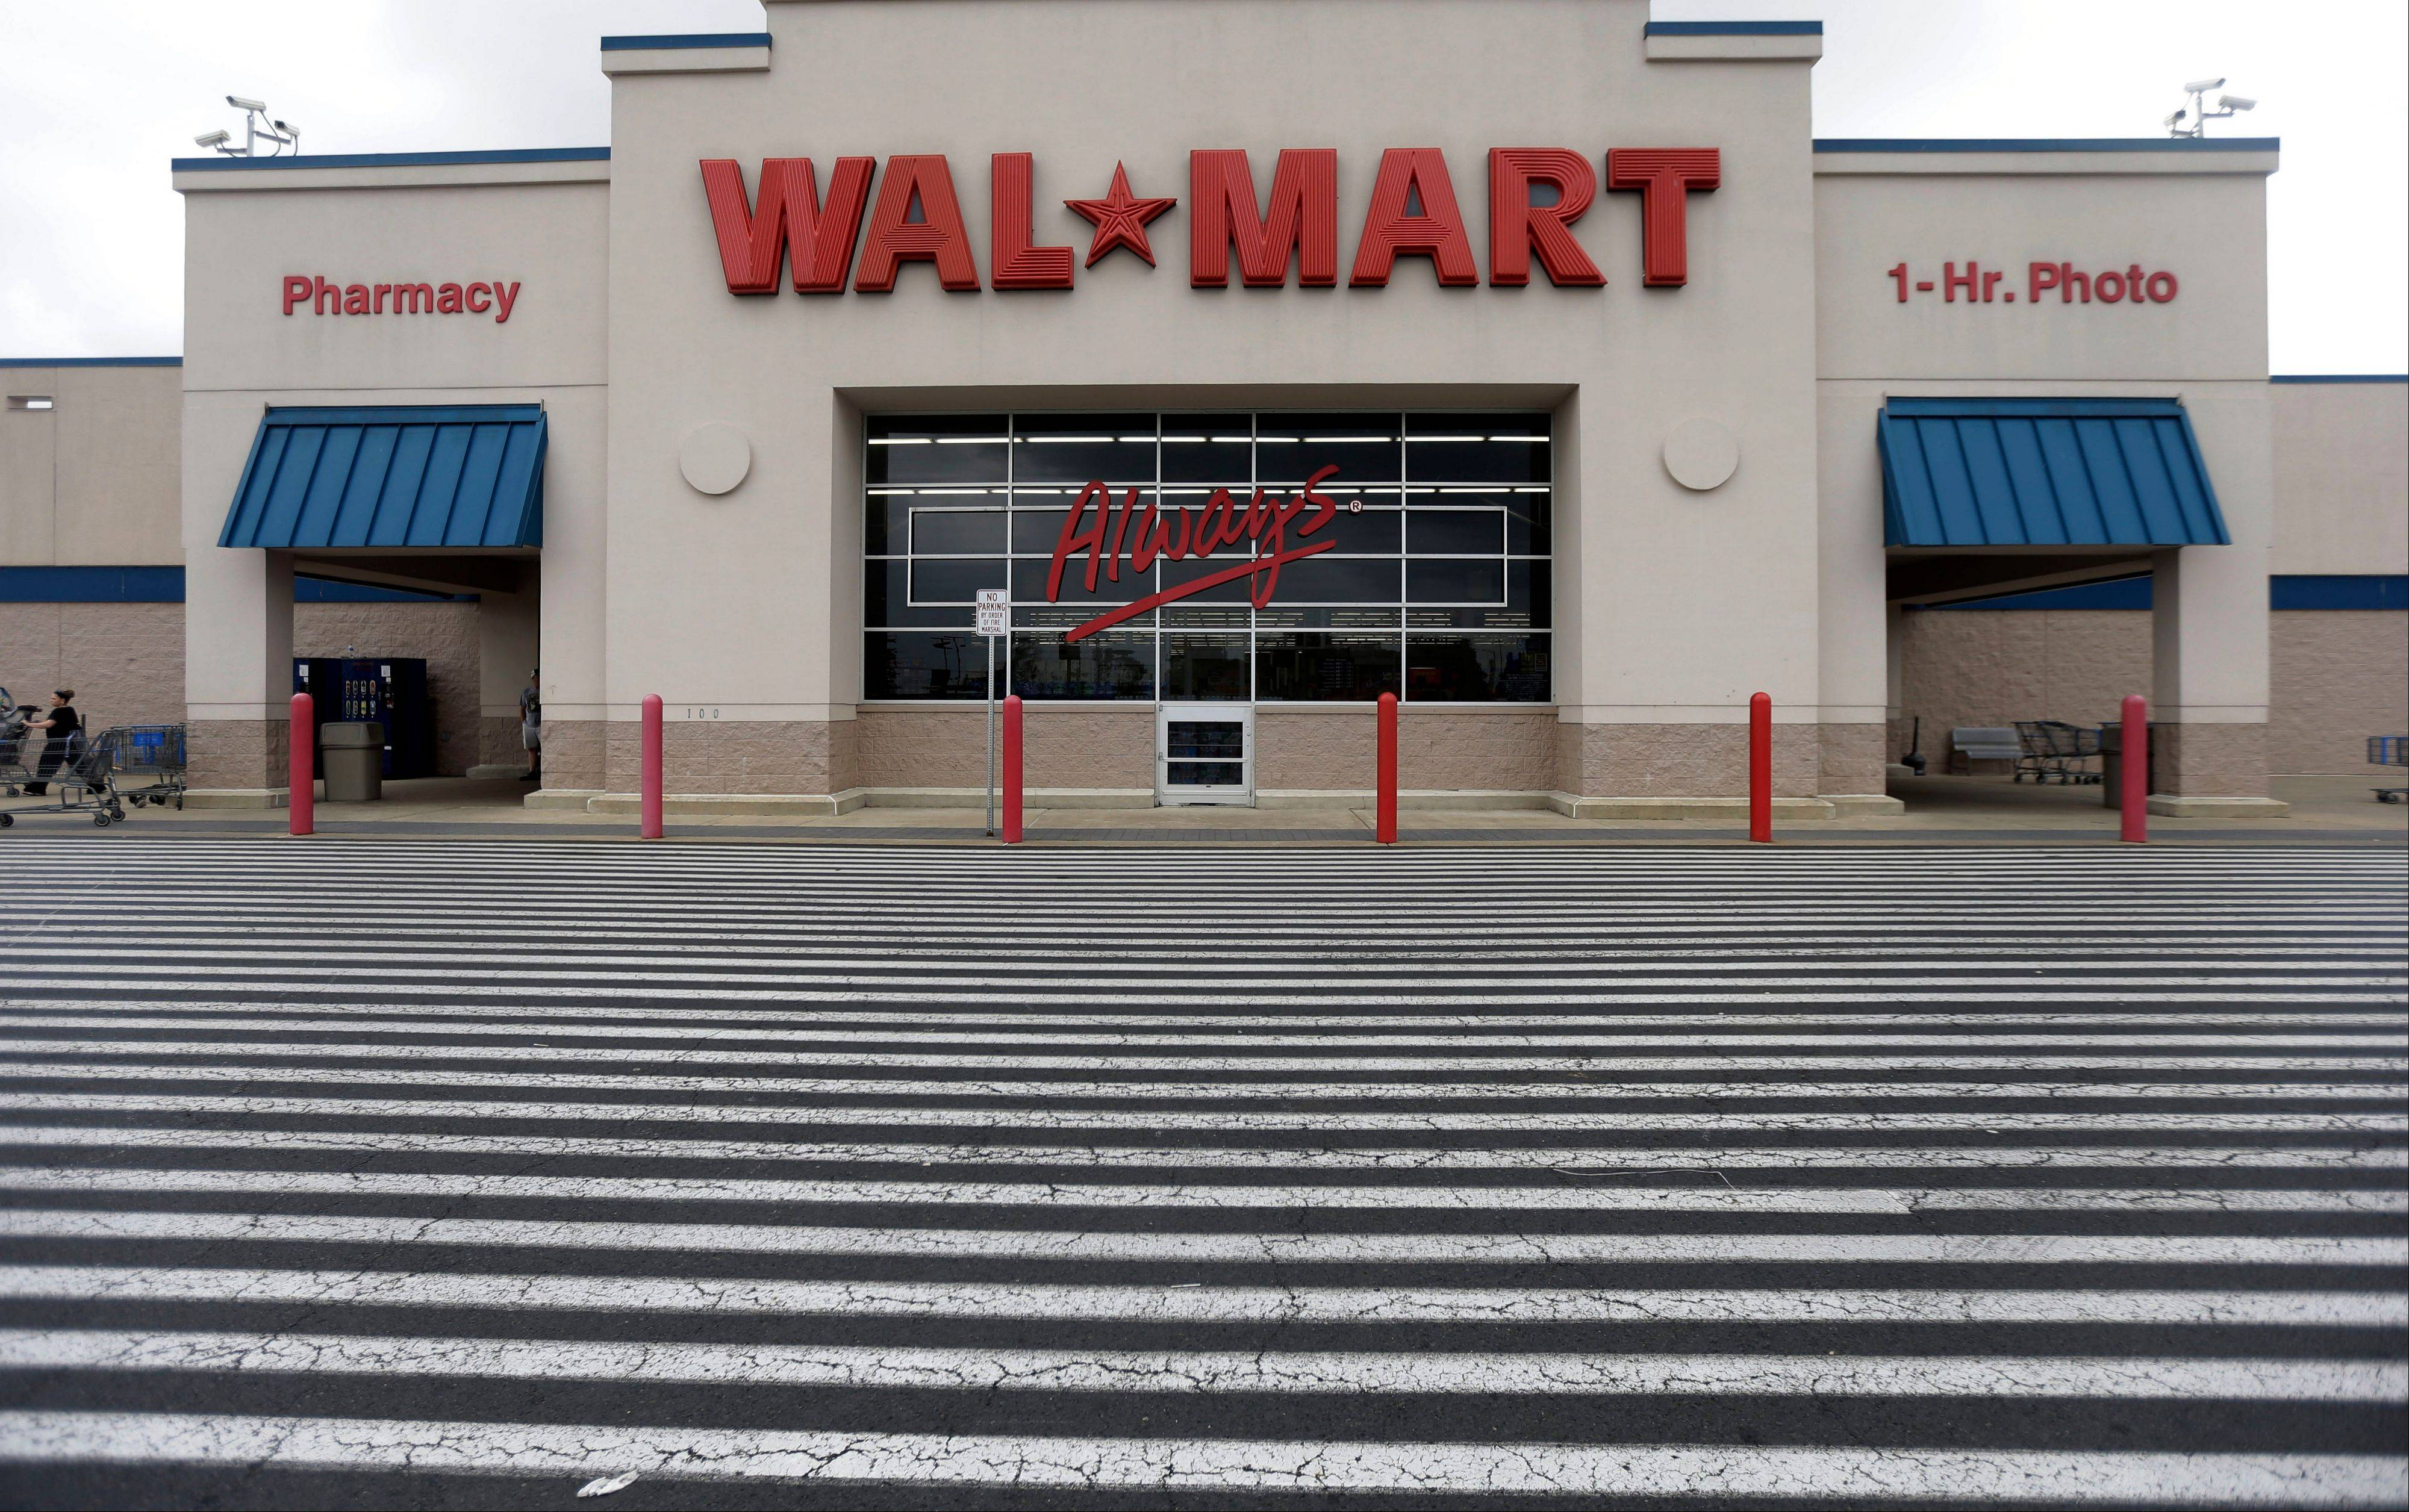 Wal-Mart Stores Inc. says that its third-quarter profit rose 2.8 percent, but the world�s largest retailer reported a sales shortfall as its low-income shoppers feel squeezed around the globe. The discounter also cut its outlook for the full year and issued fourth-quarter profit guidance that was below analysts� projections.